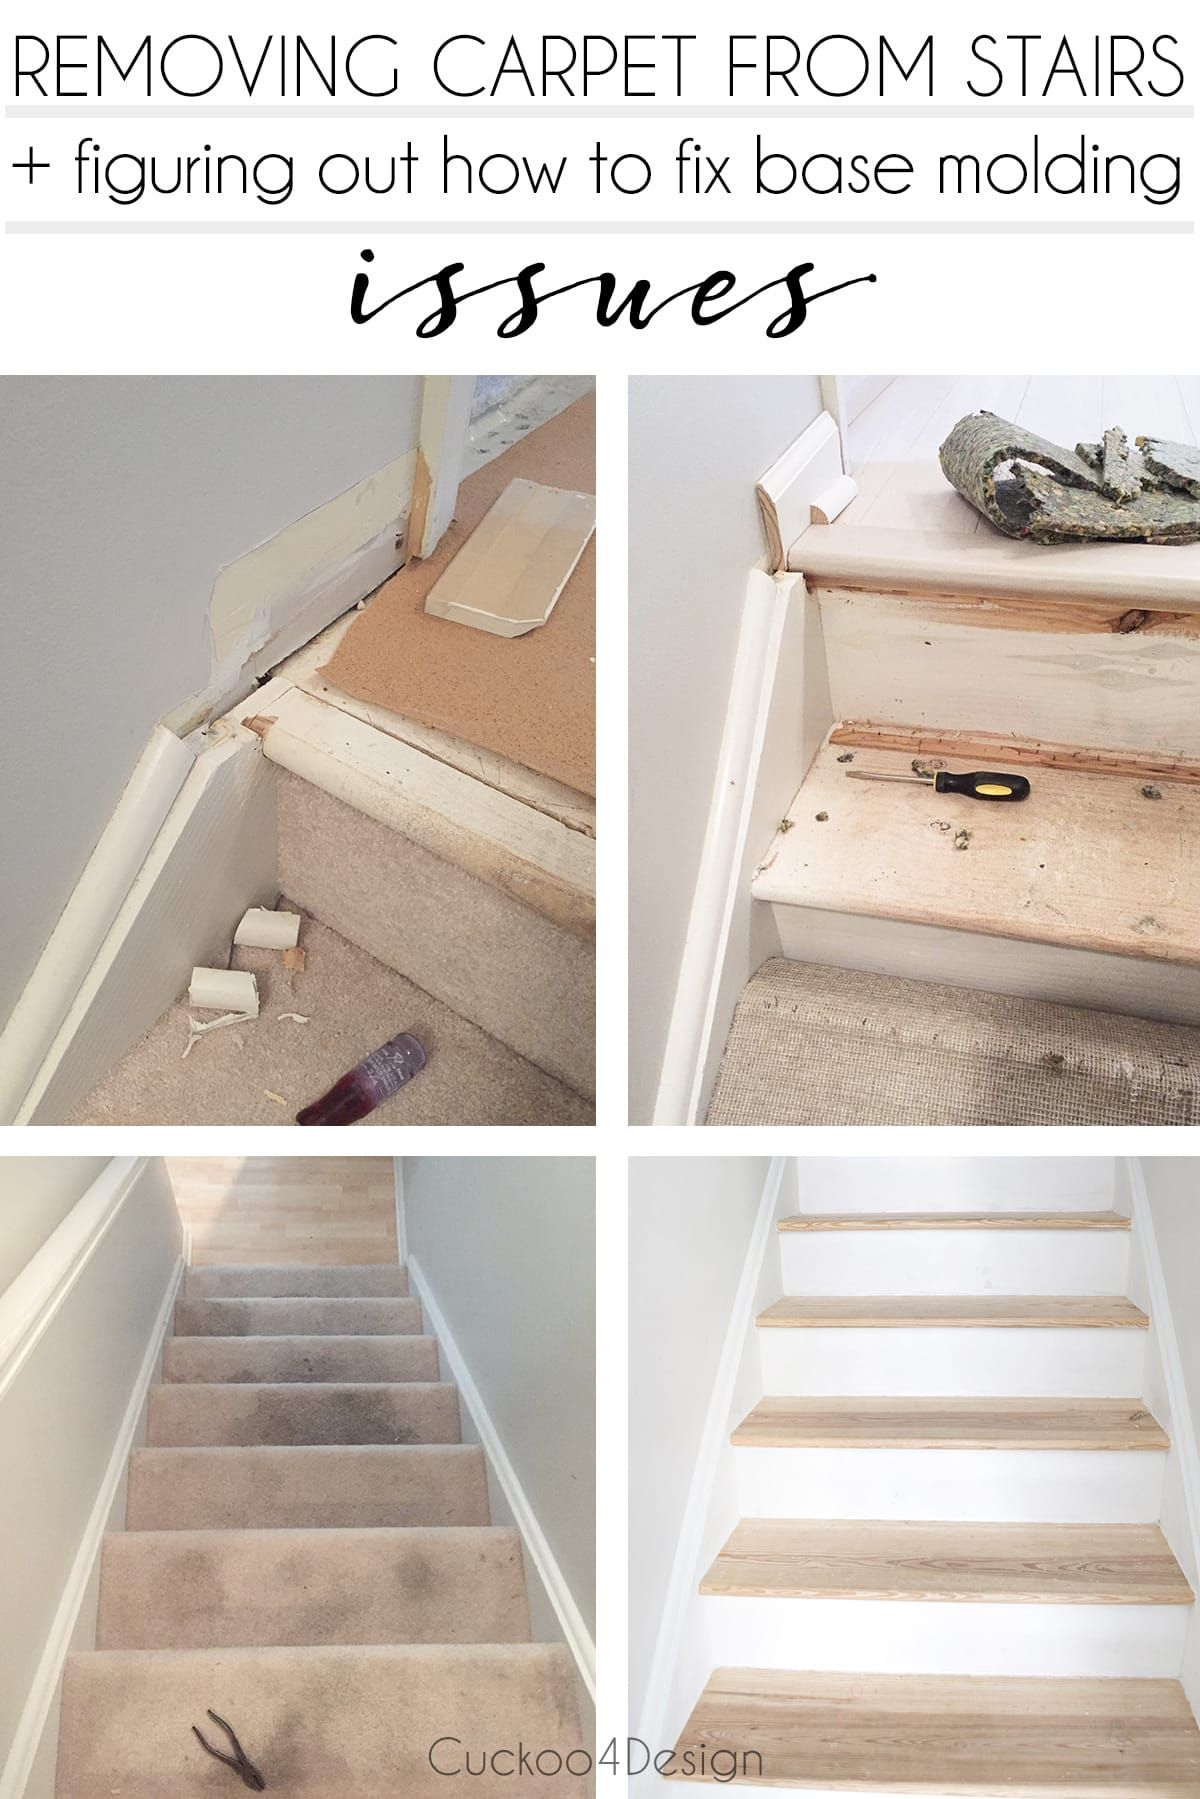 Removing Carpet From Stairs Removing Carpet Carpet Stairs